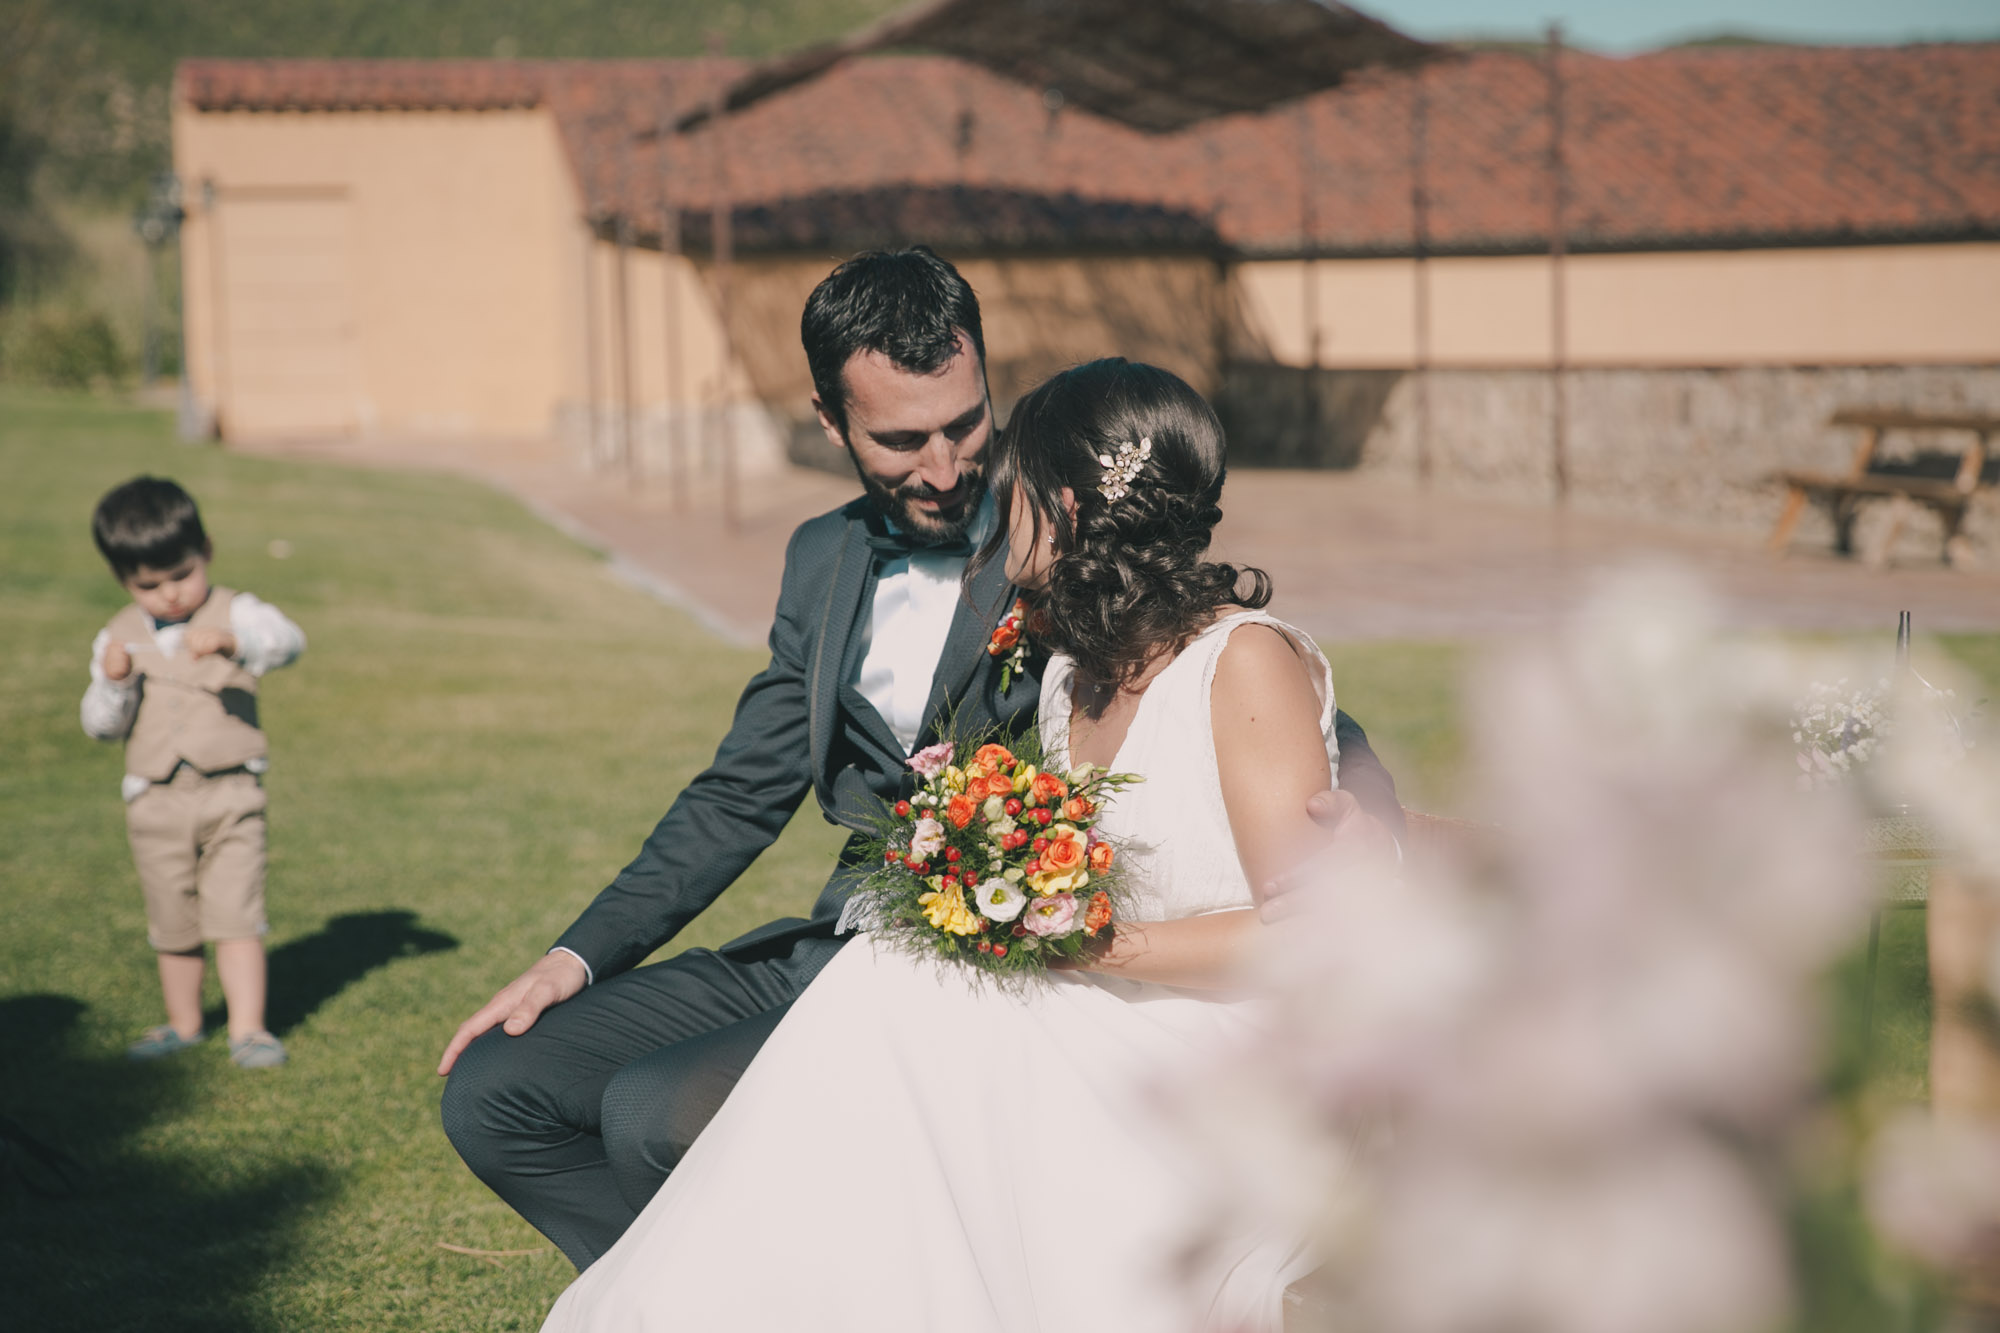 hondo_wedding_photography_Montse&Julien_44